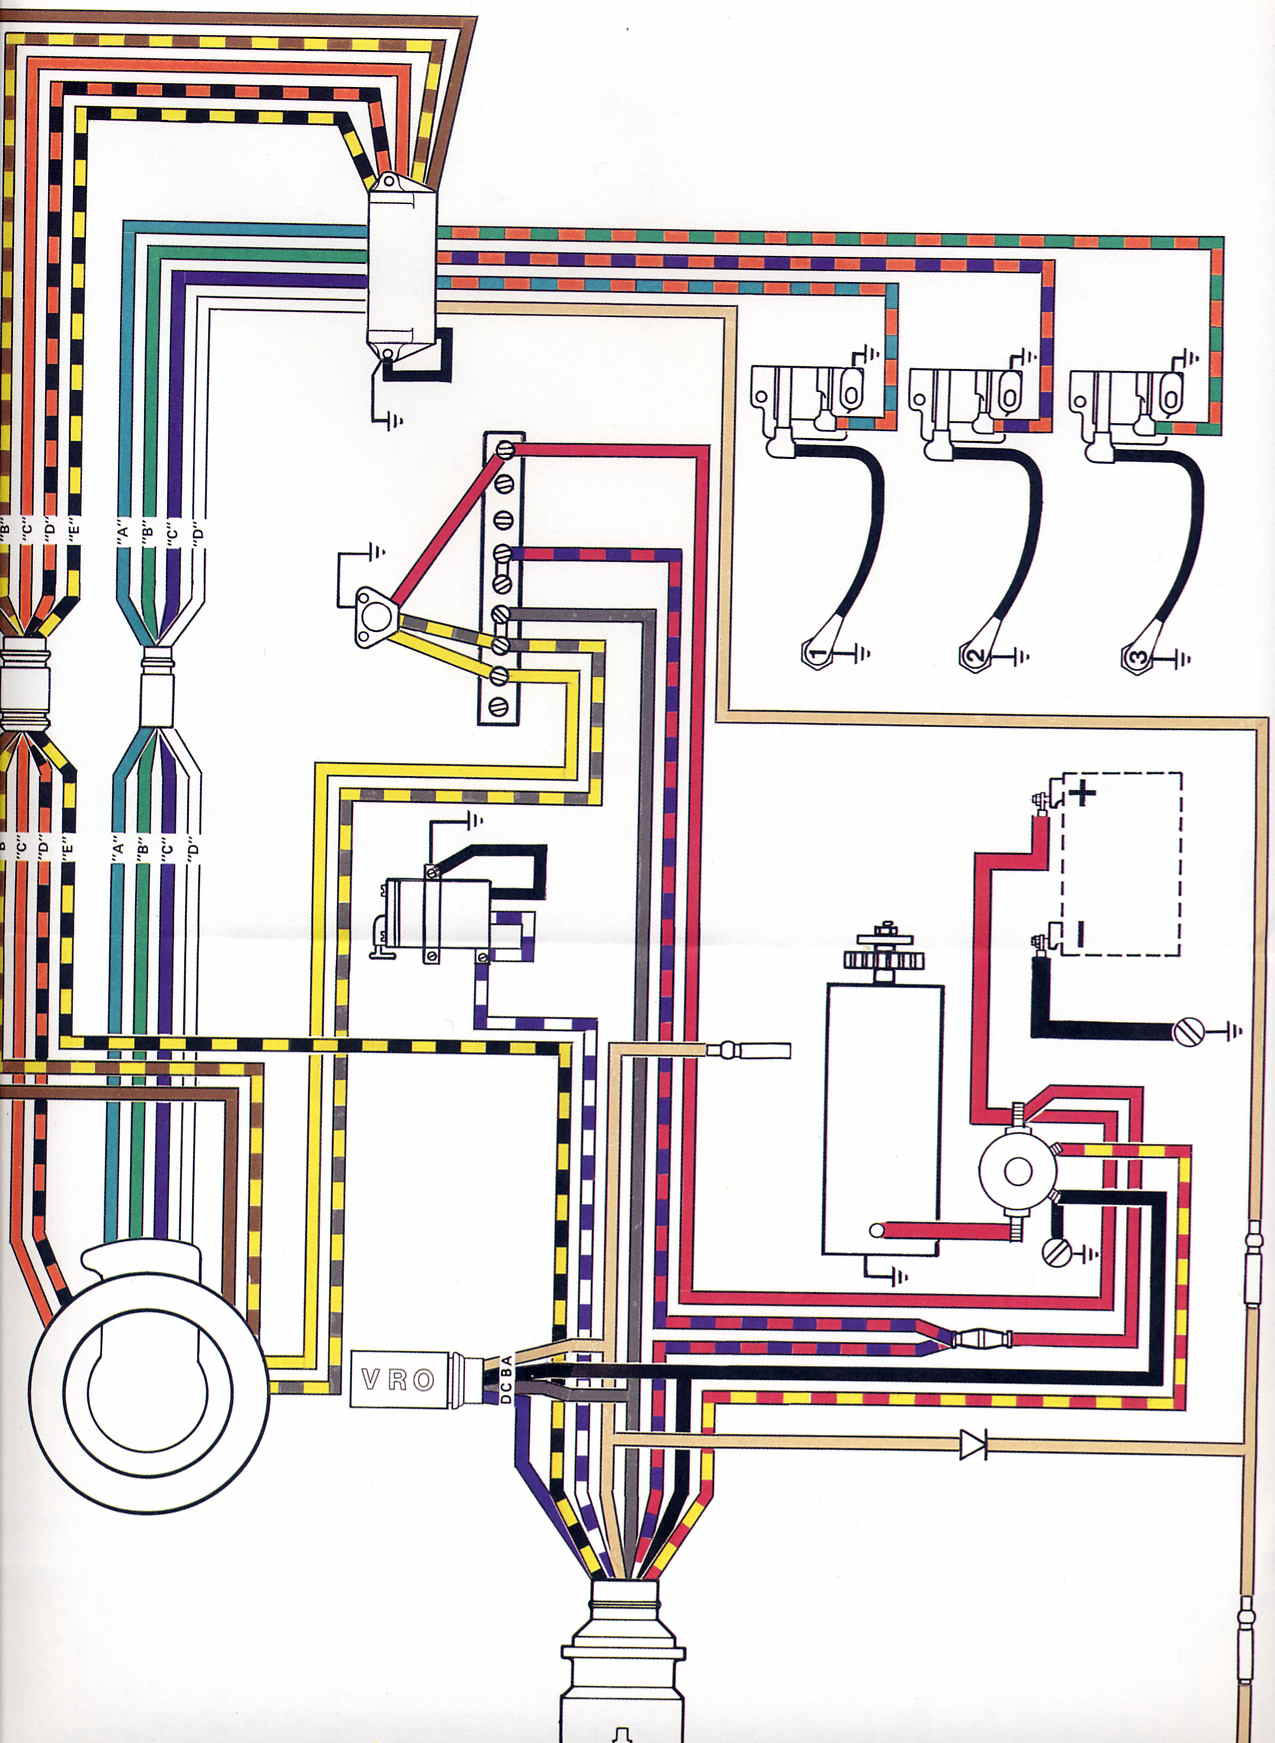 70 Hp Johnson Outboard Wiring Diagram - 2015 Chevy Colorado Trailer Wiring  Harness - bullet-squier.tukune.jeanjaures37.fr | 70 Hp Johnson Outboard Wiring Diagram |  | Wiring Diagram Resource